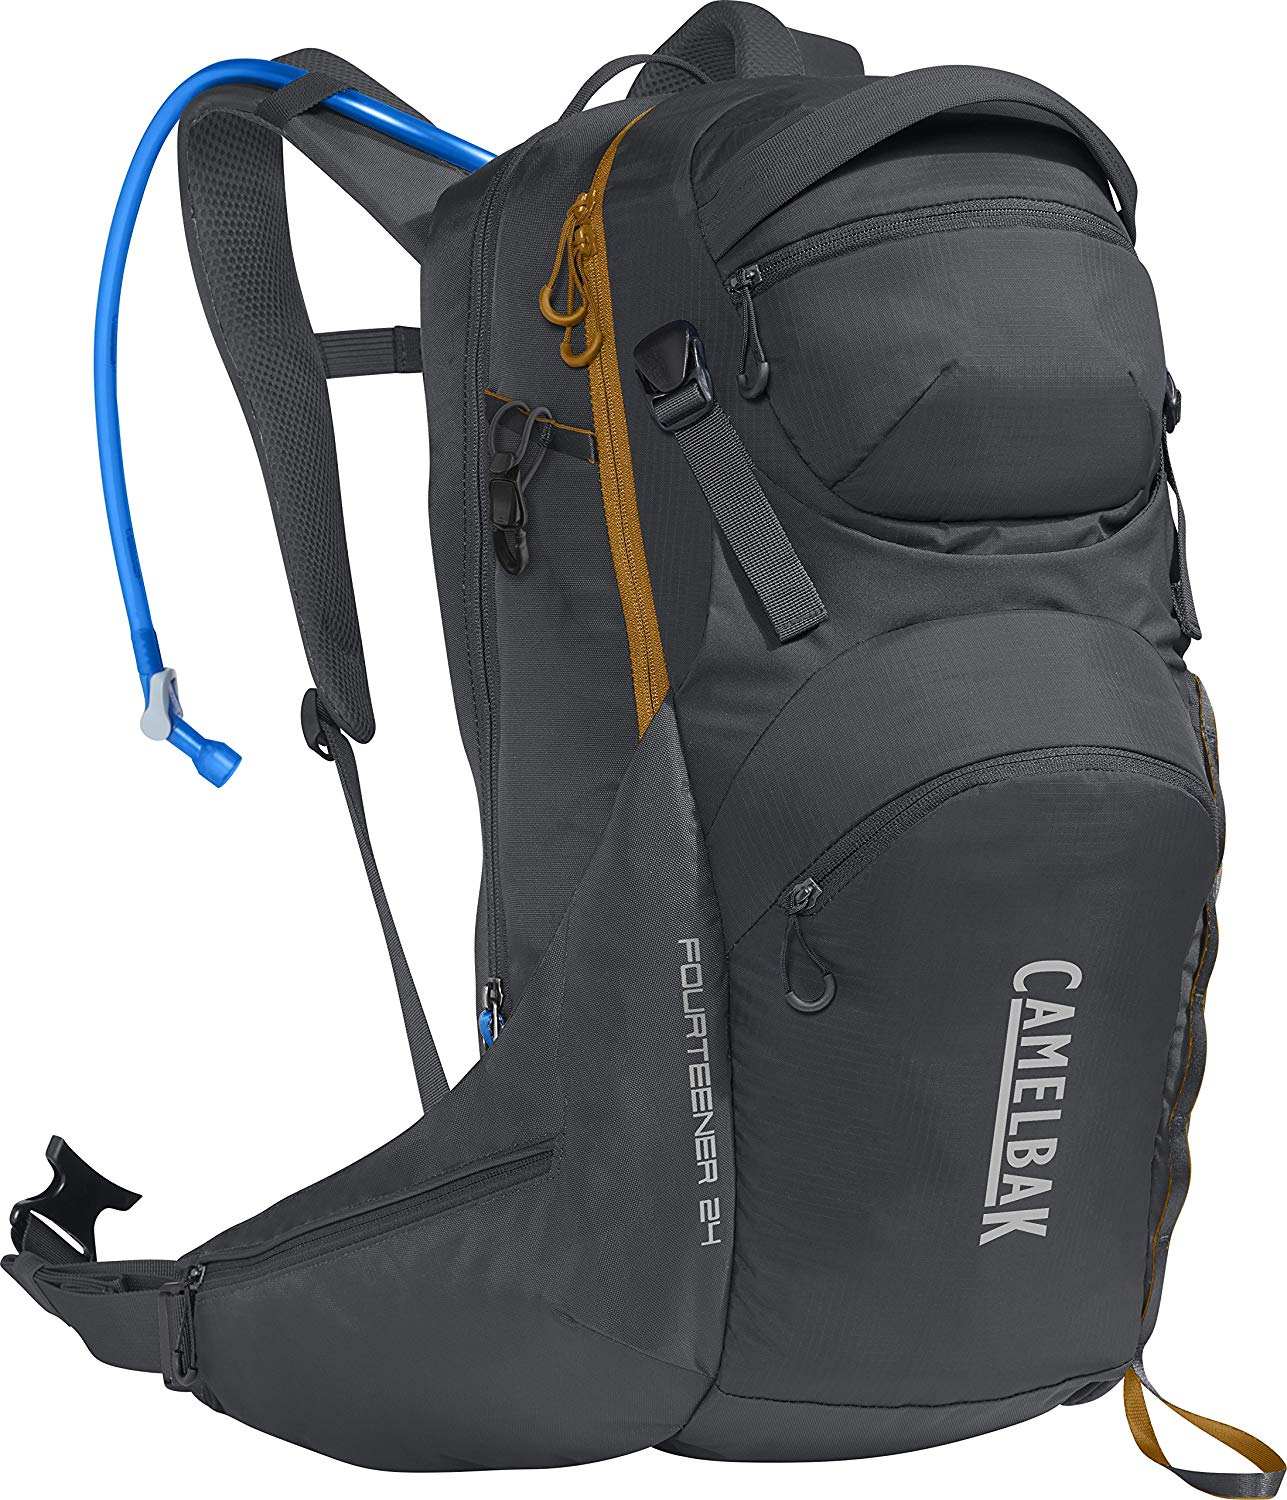 CamelBak Fourteener 24 Daypack test